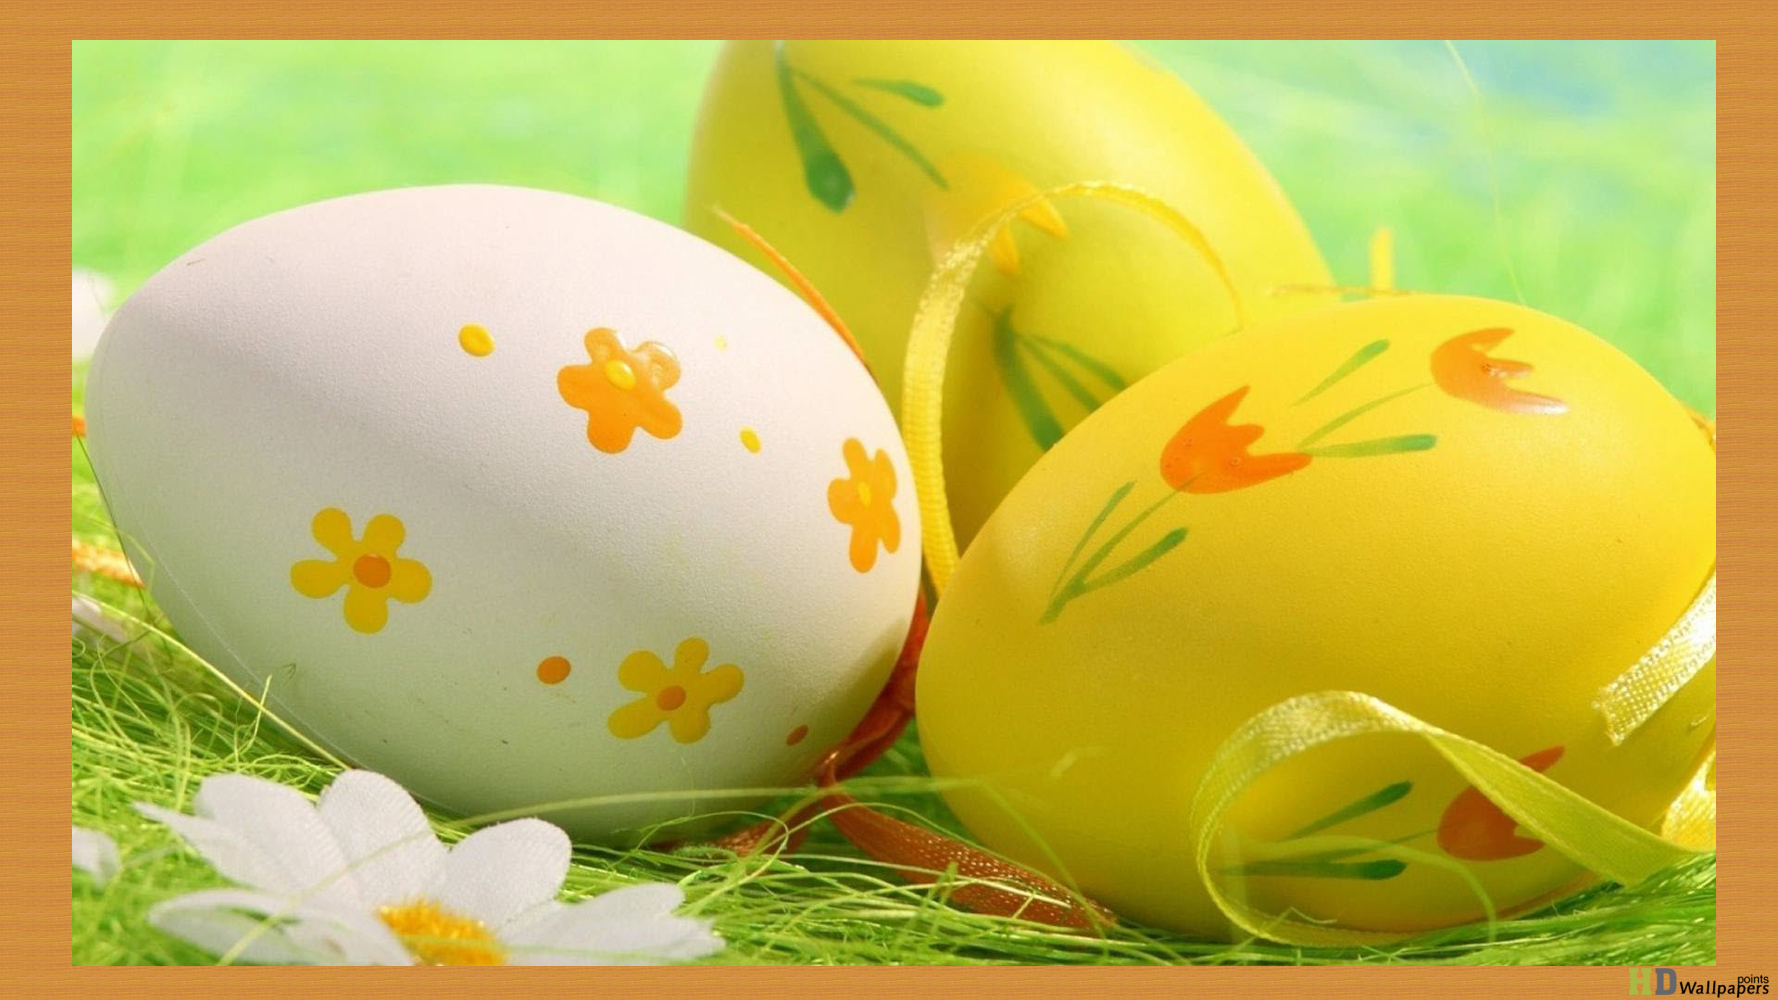 Egg Wallpaper 2014 Happy Easter Eggs Wallpapers 2014 HD Wallpaper 1778x1000